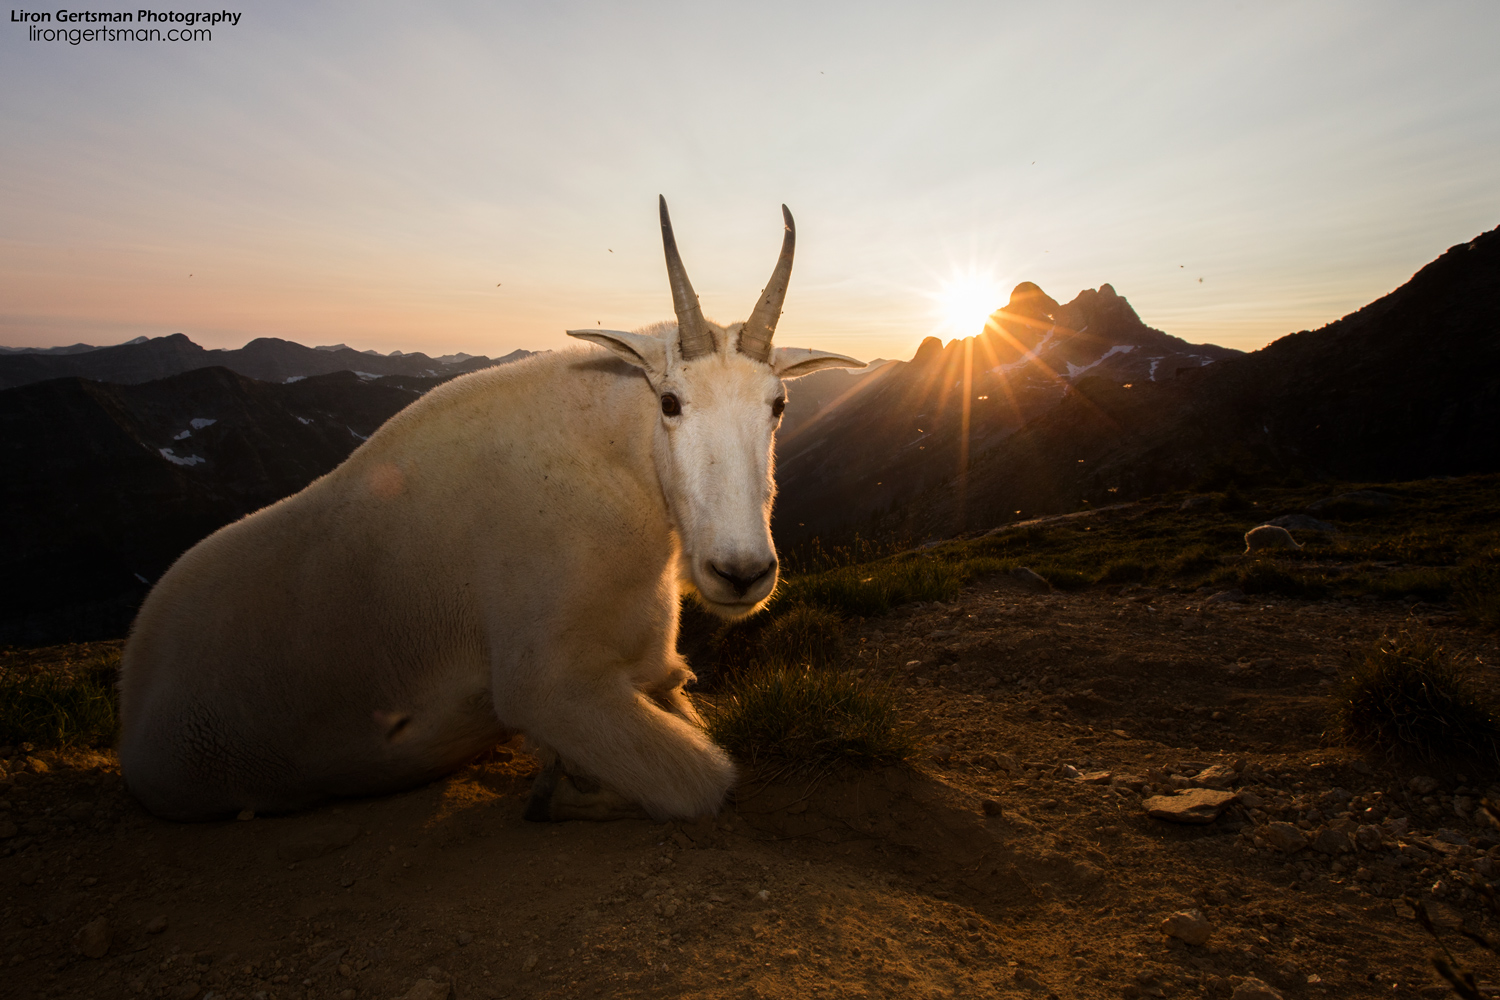 """This was the biggest and seemingly most dominant goat of the group, an impressive looking male that we affectionately referred to as """"big boy"""". Big boy often came the closest to us as we were photographing."""